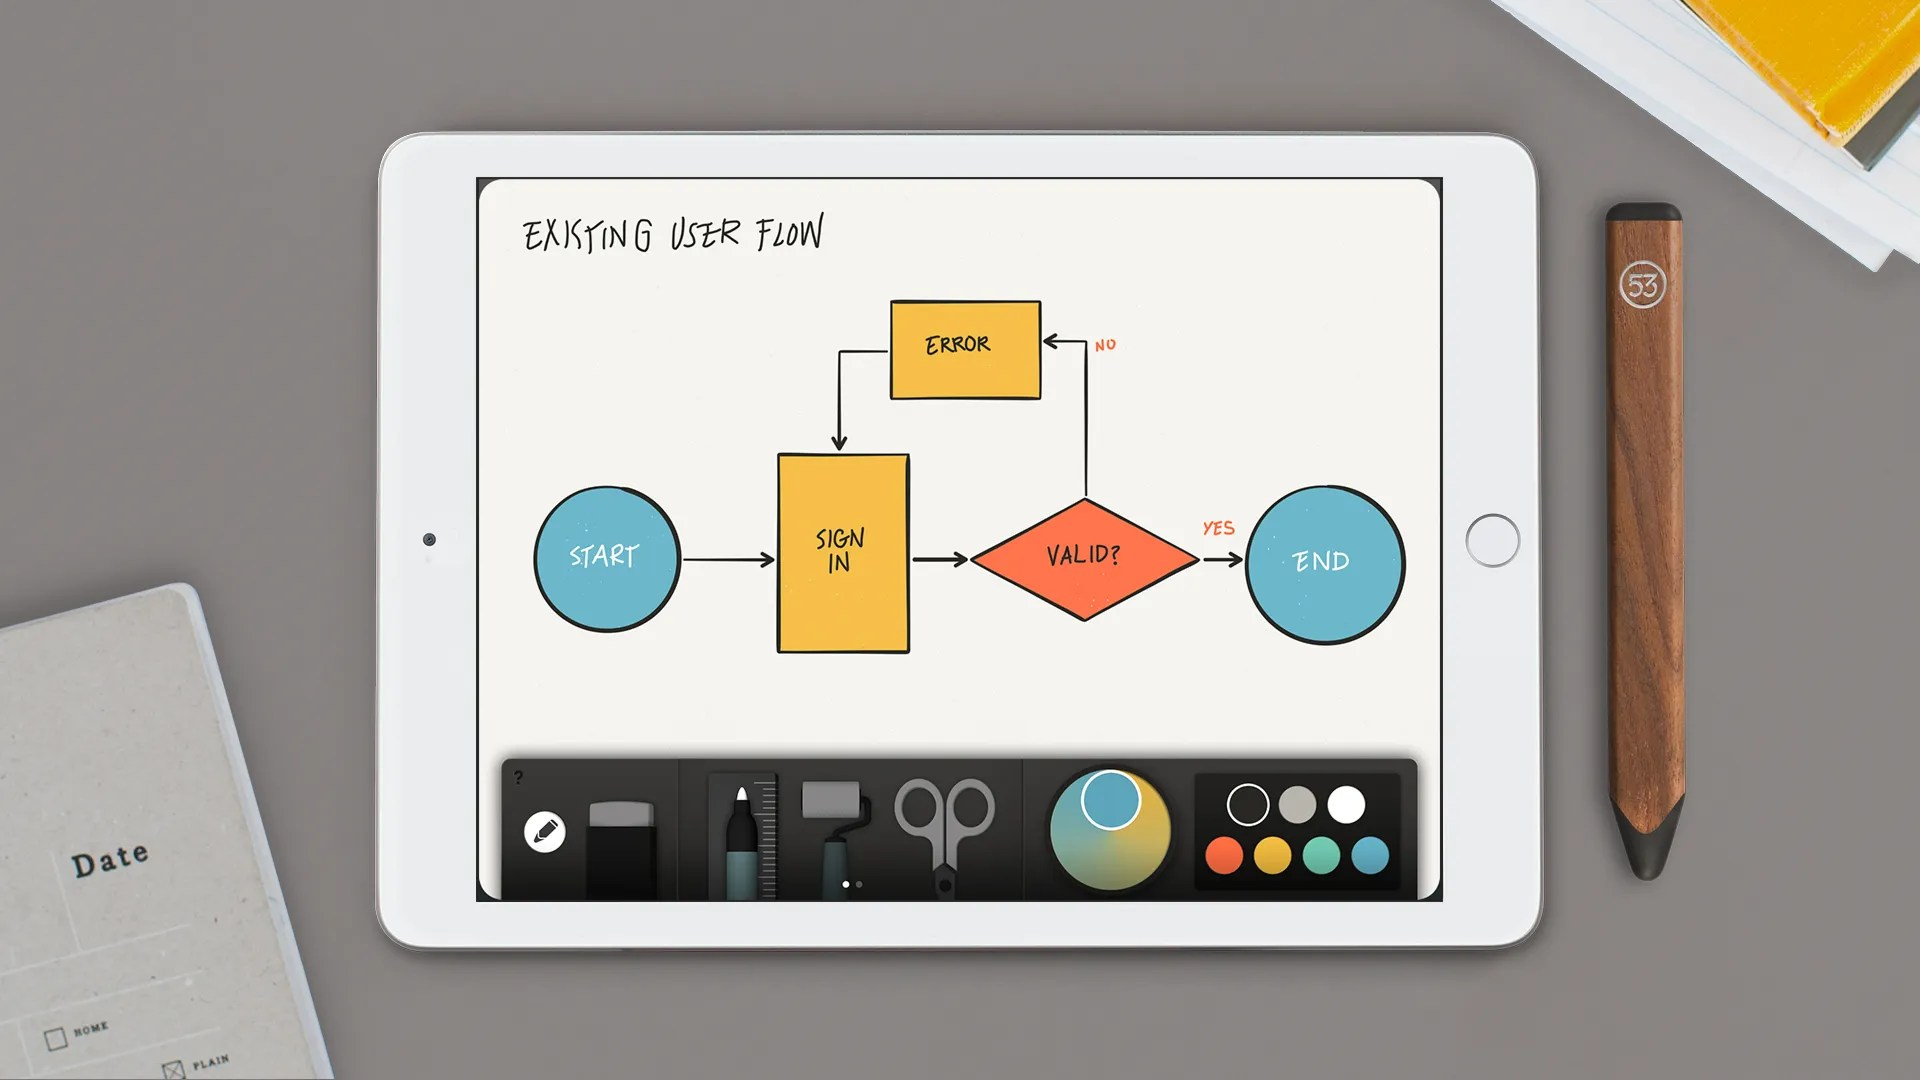 hight resolution of paper s handy new diagram tool hints at the ipad s future